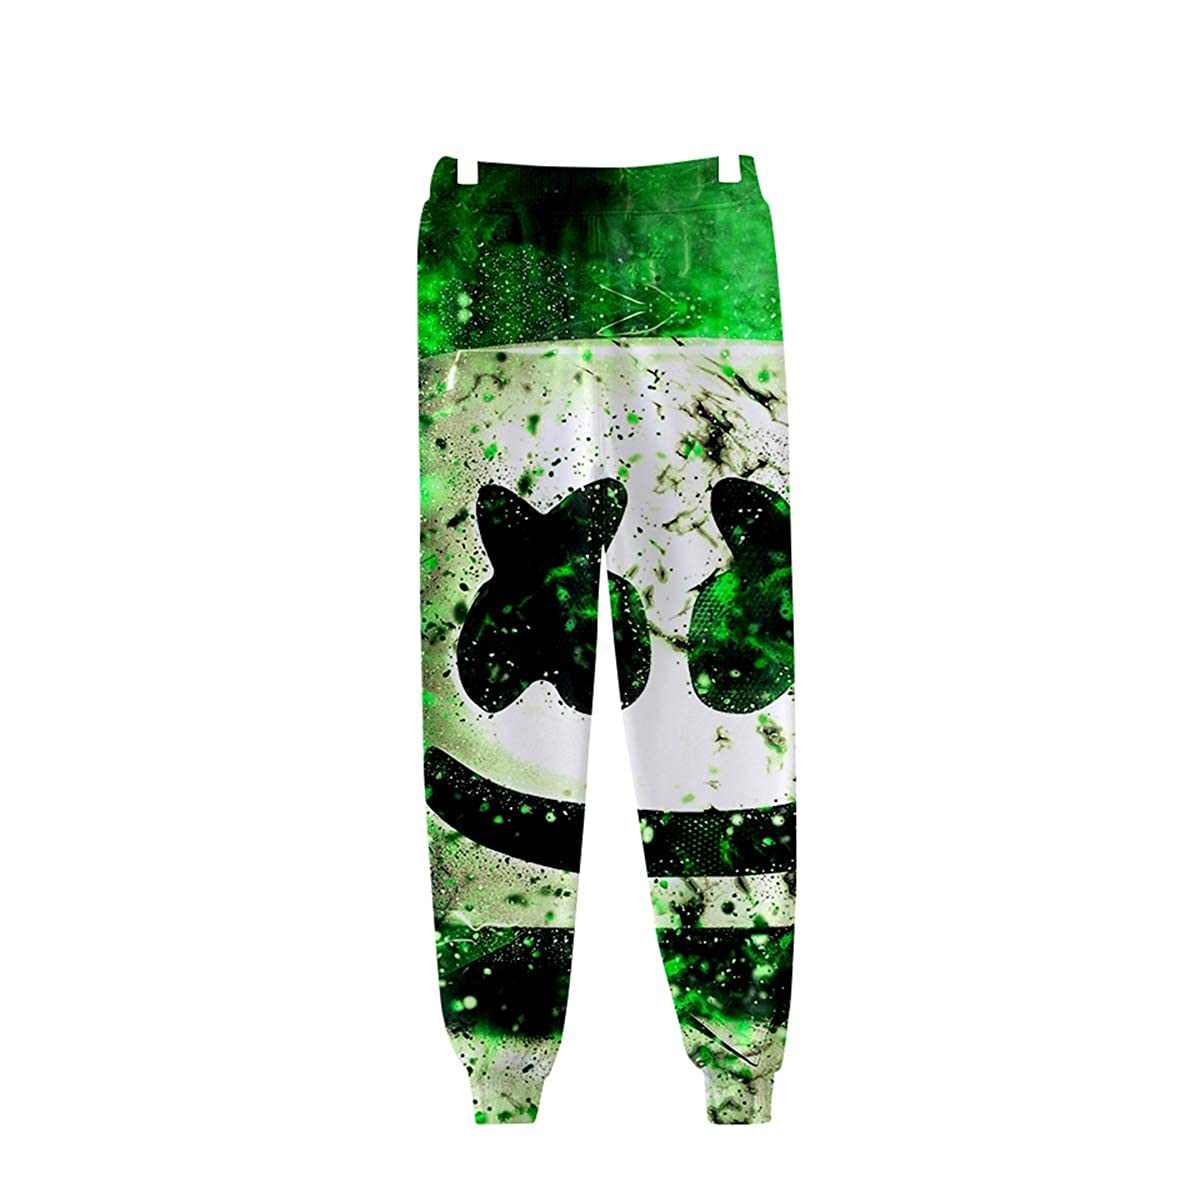 f003cae3e80e11 Amazon.com: INTERESTPRINT Cool Marshmello Face 3D Joggers Pants Trousers  Sport Track Sweatpants Baggy for Men/Women: Clothing